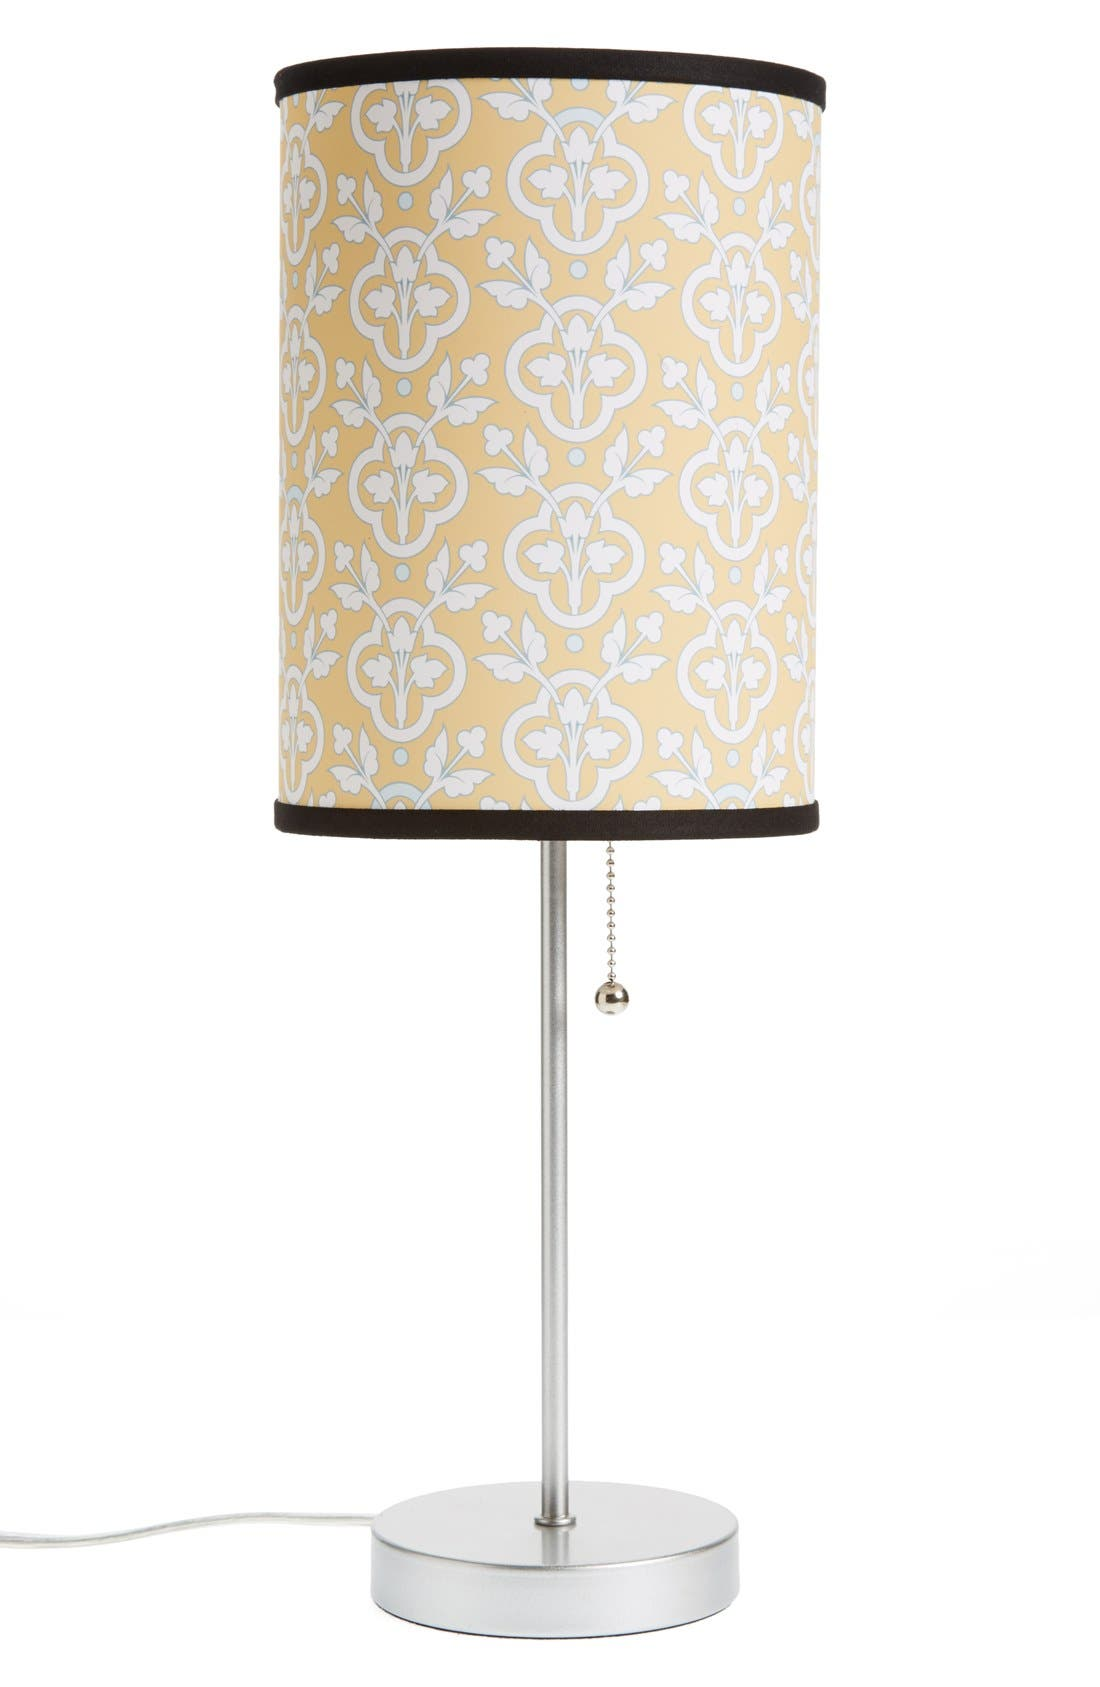 Alternate Image 1 Selected - LAMP-IN-A-BOX Medallion Table Lamp